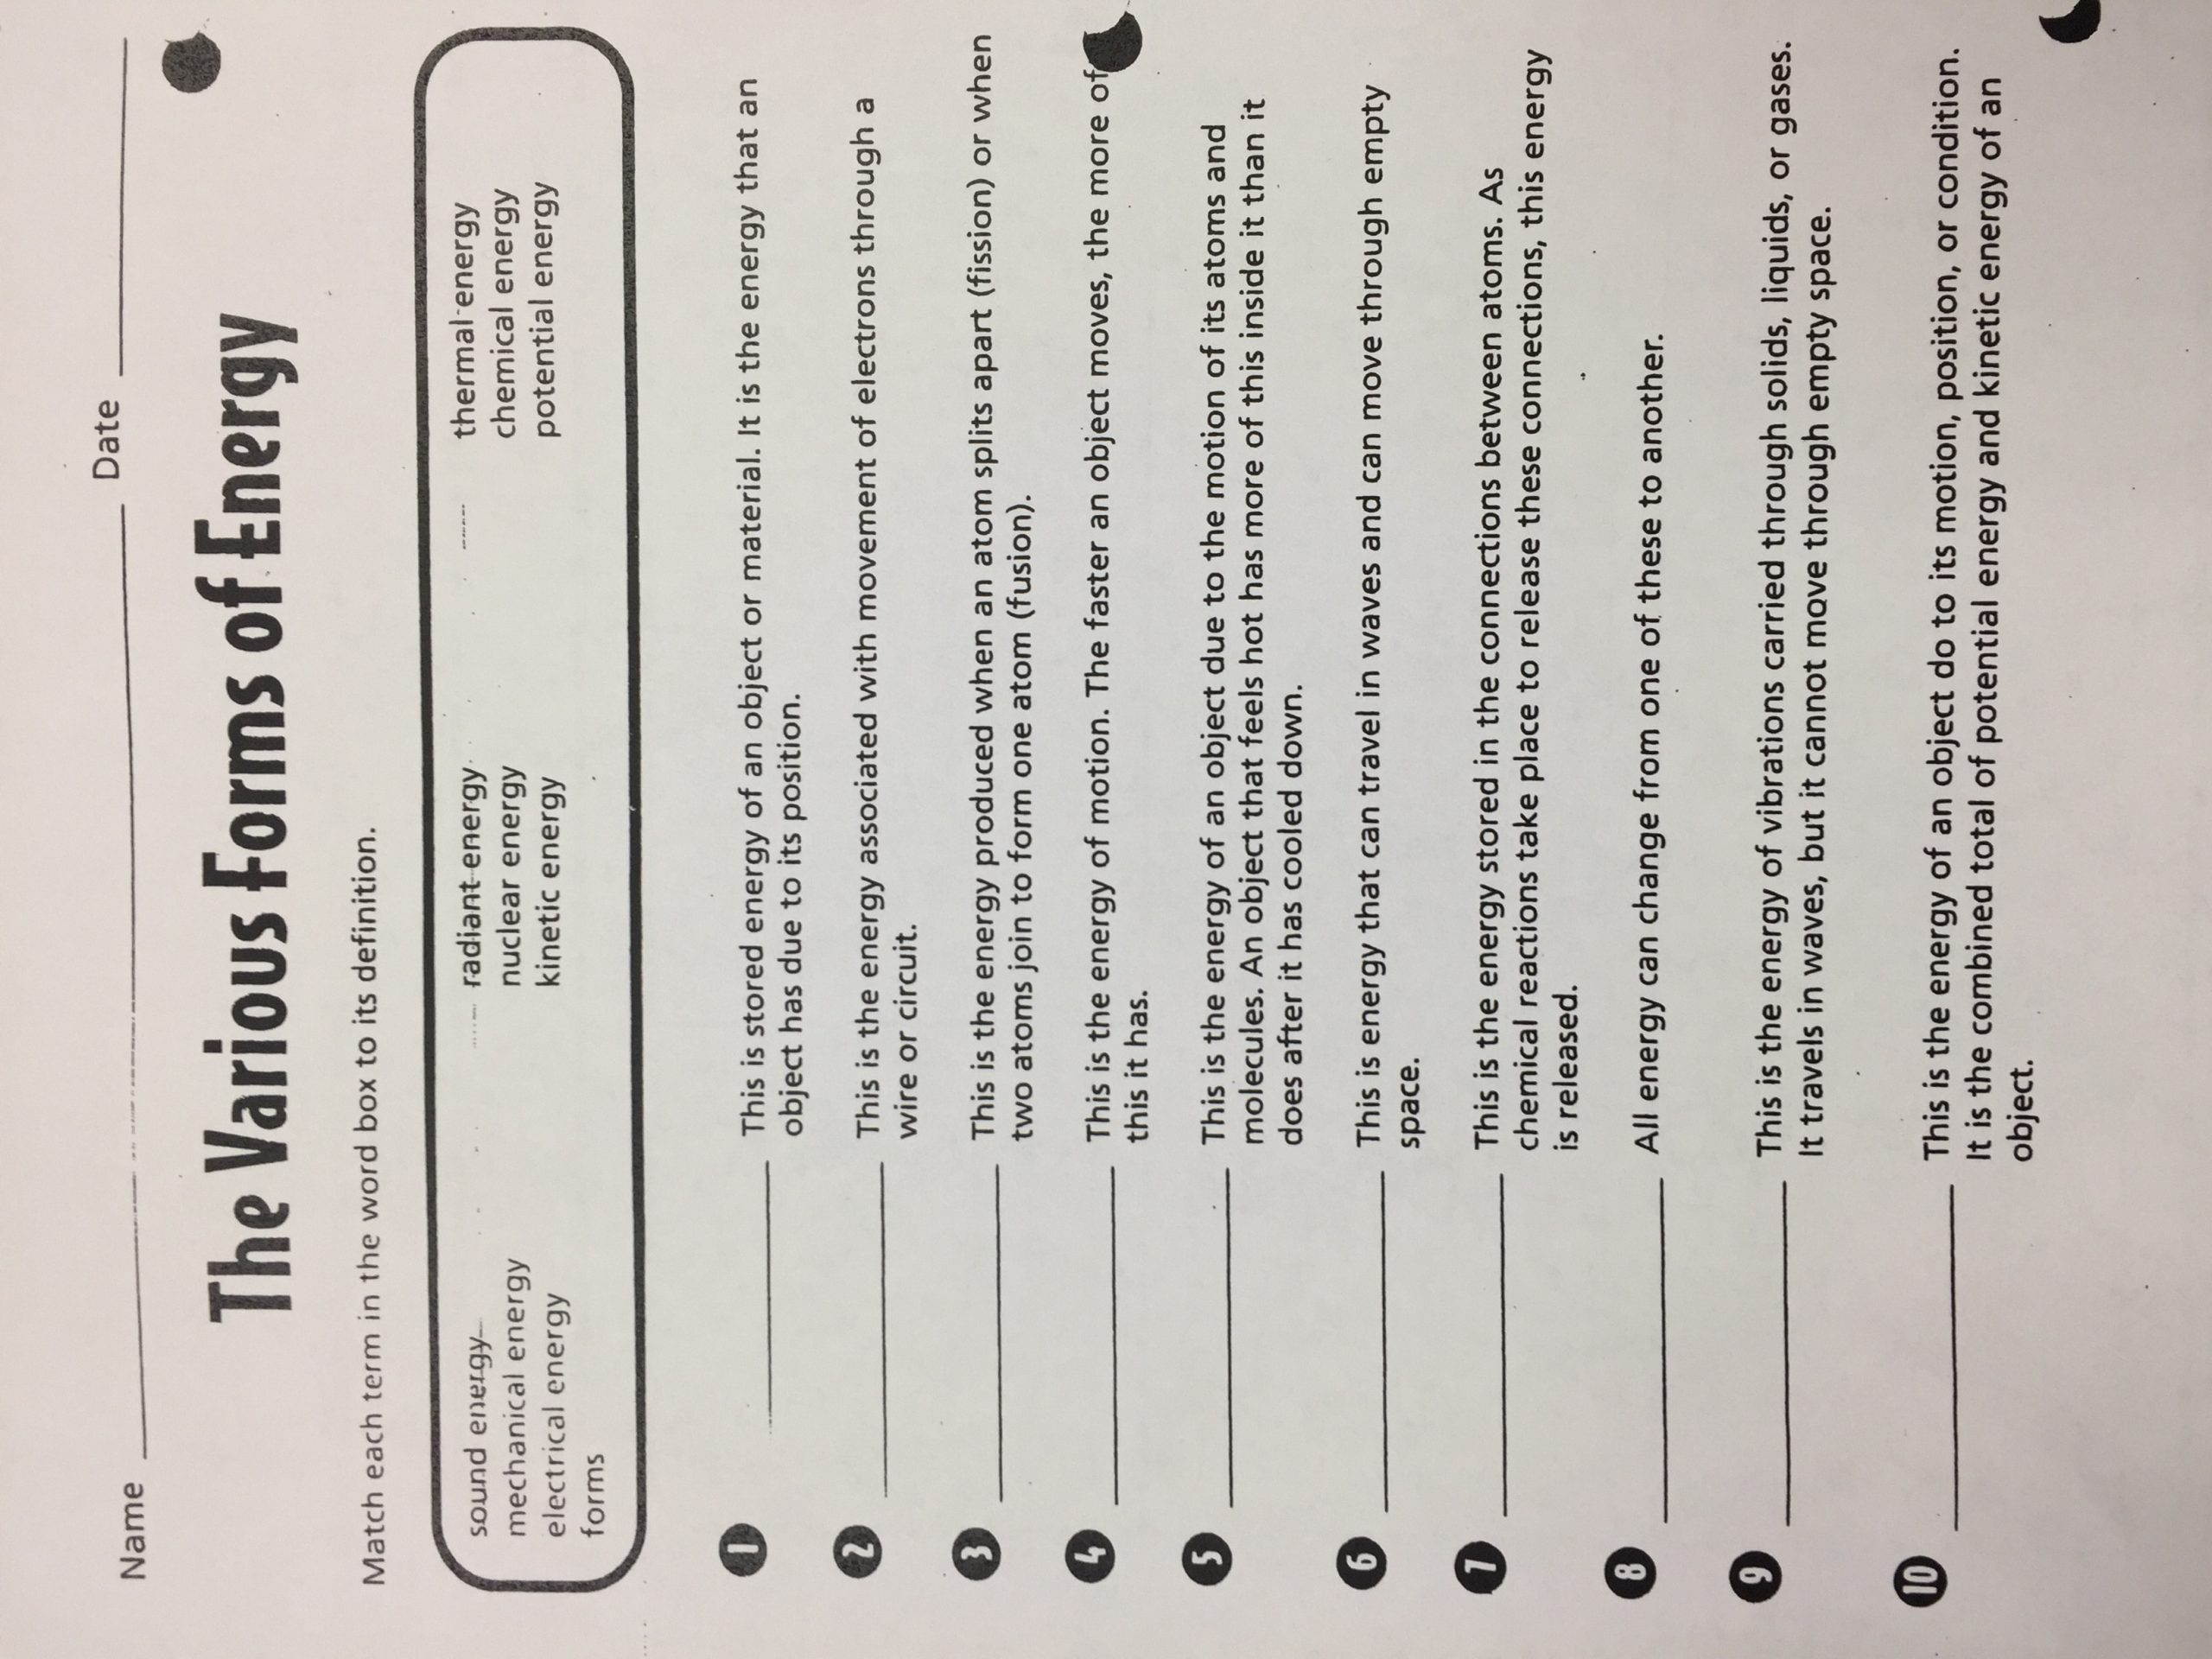 Energy Transformation Worksheet Middle School Michelle Hufstetler Bainbridge Middle School